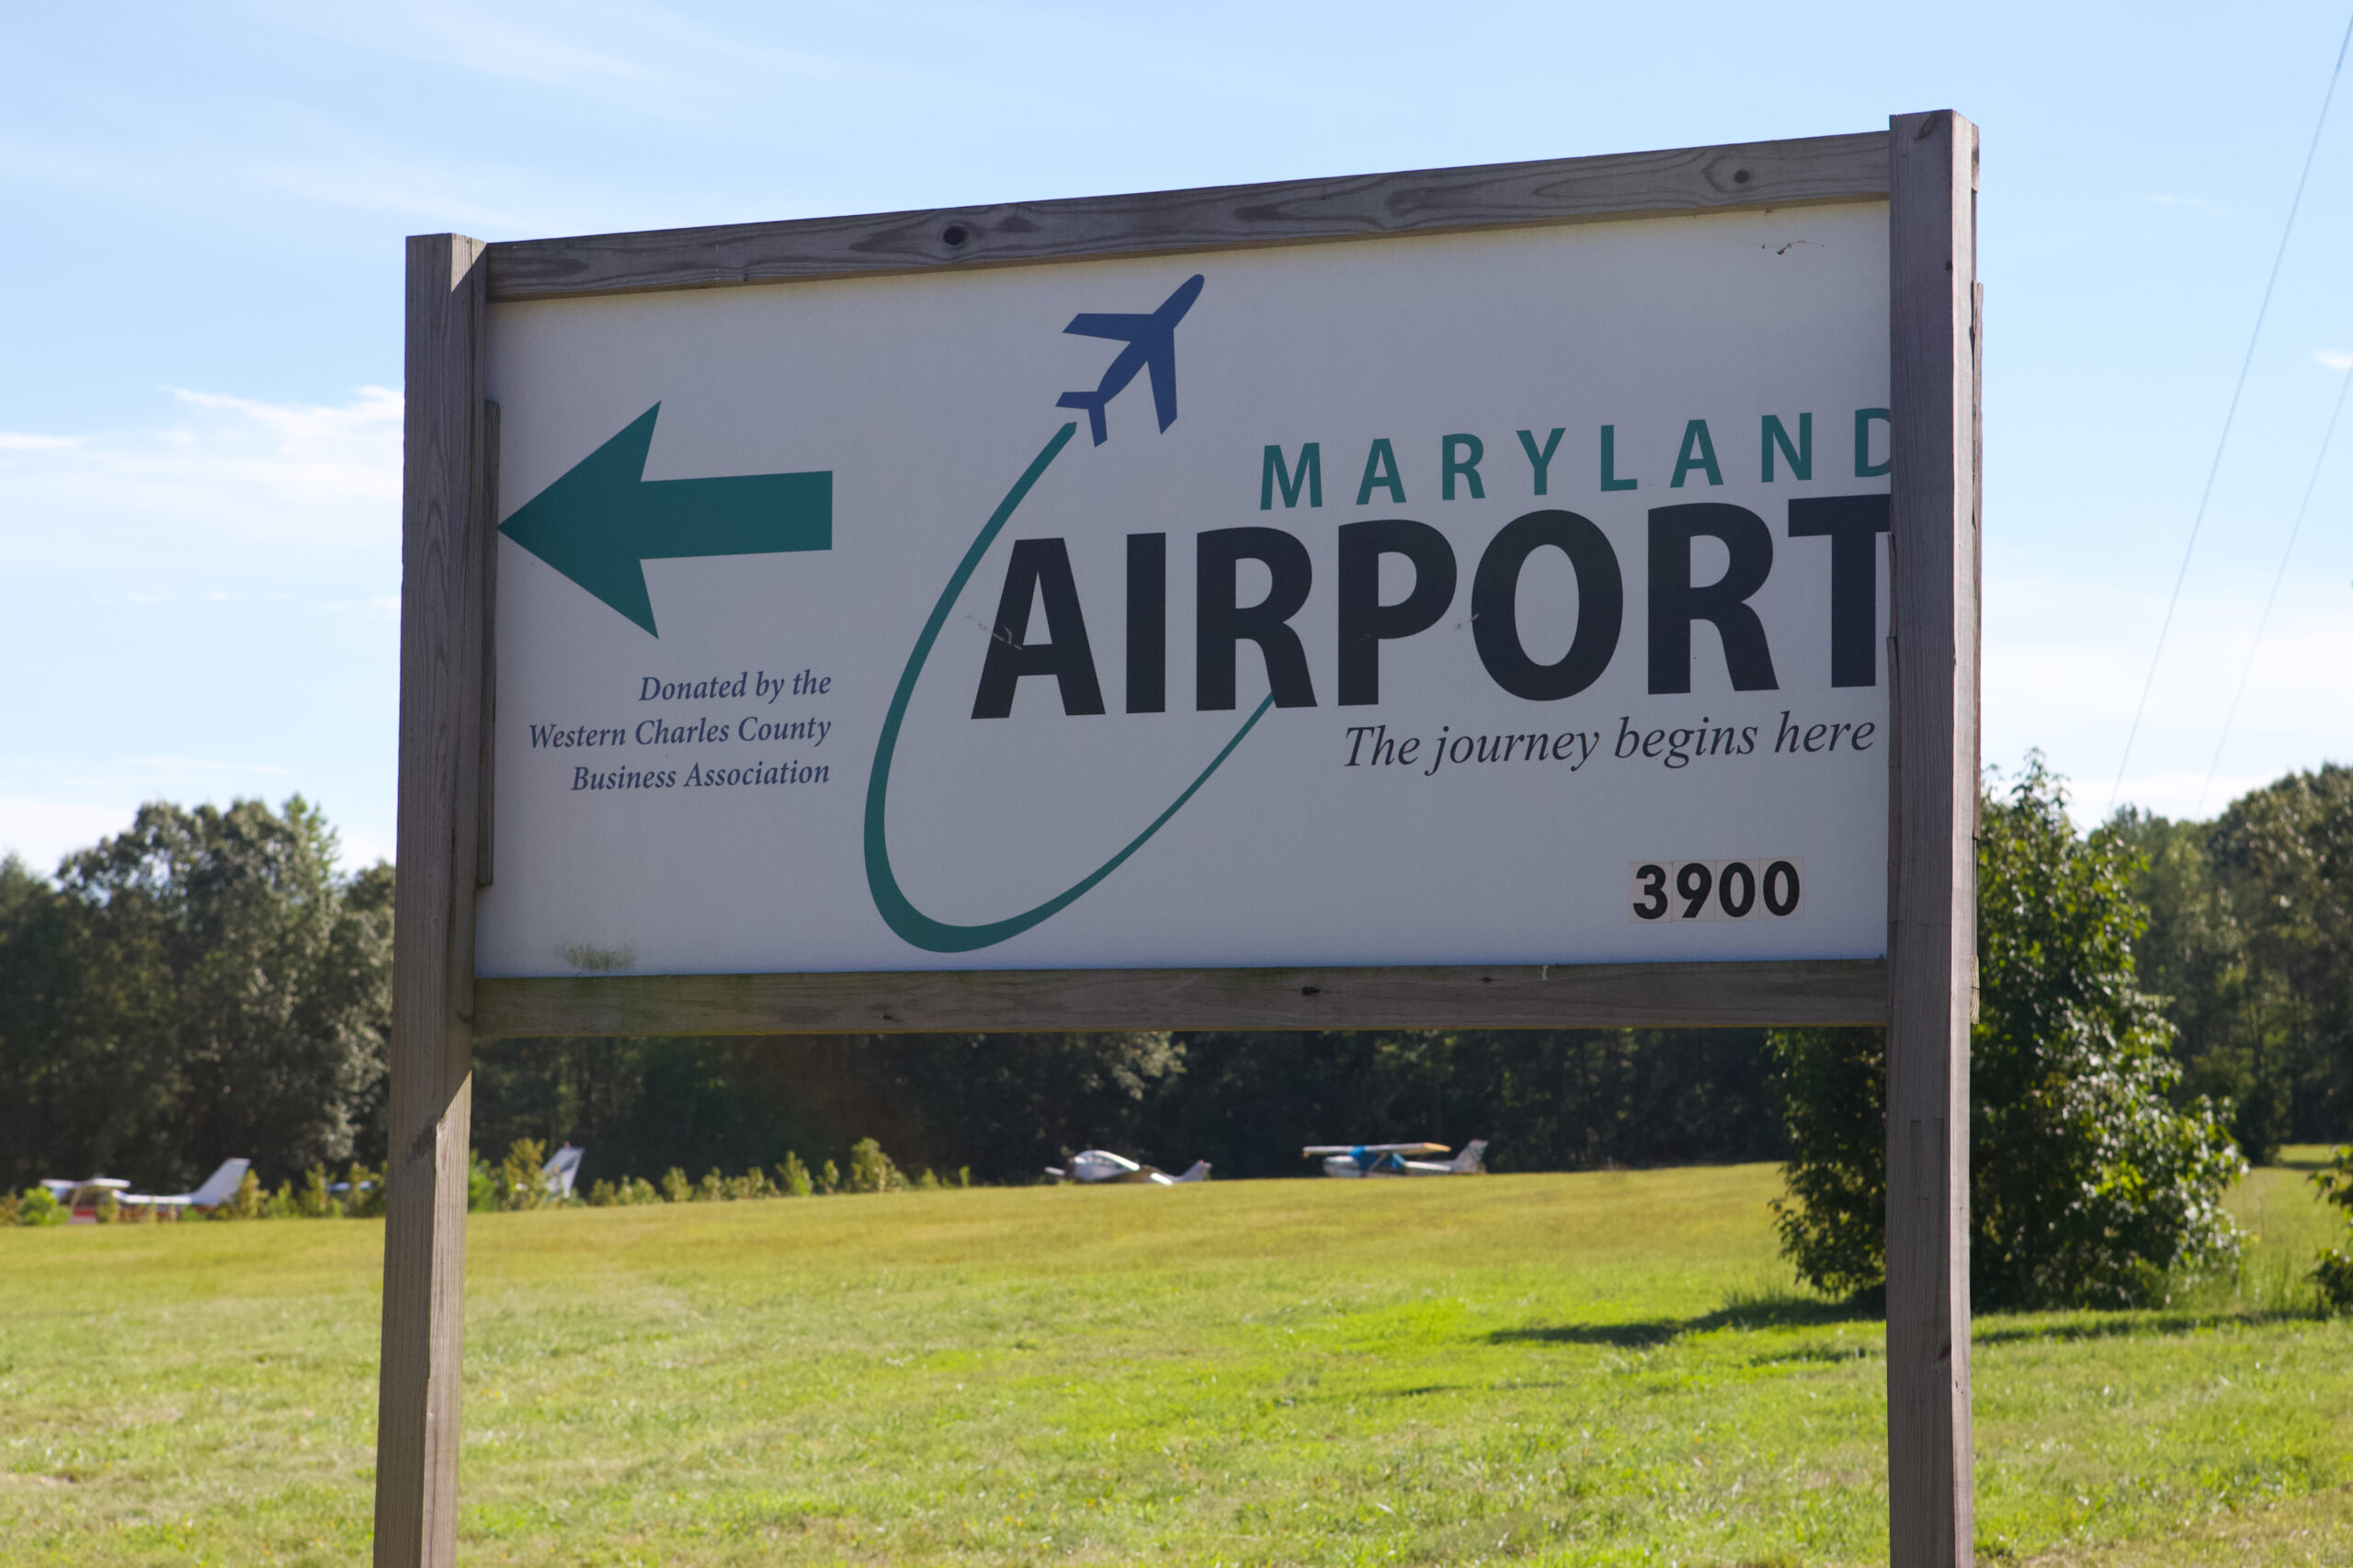 Maryland Airport sign